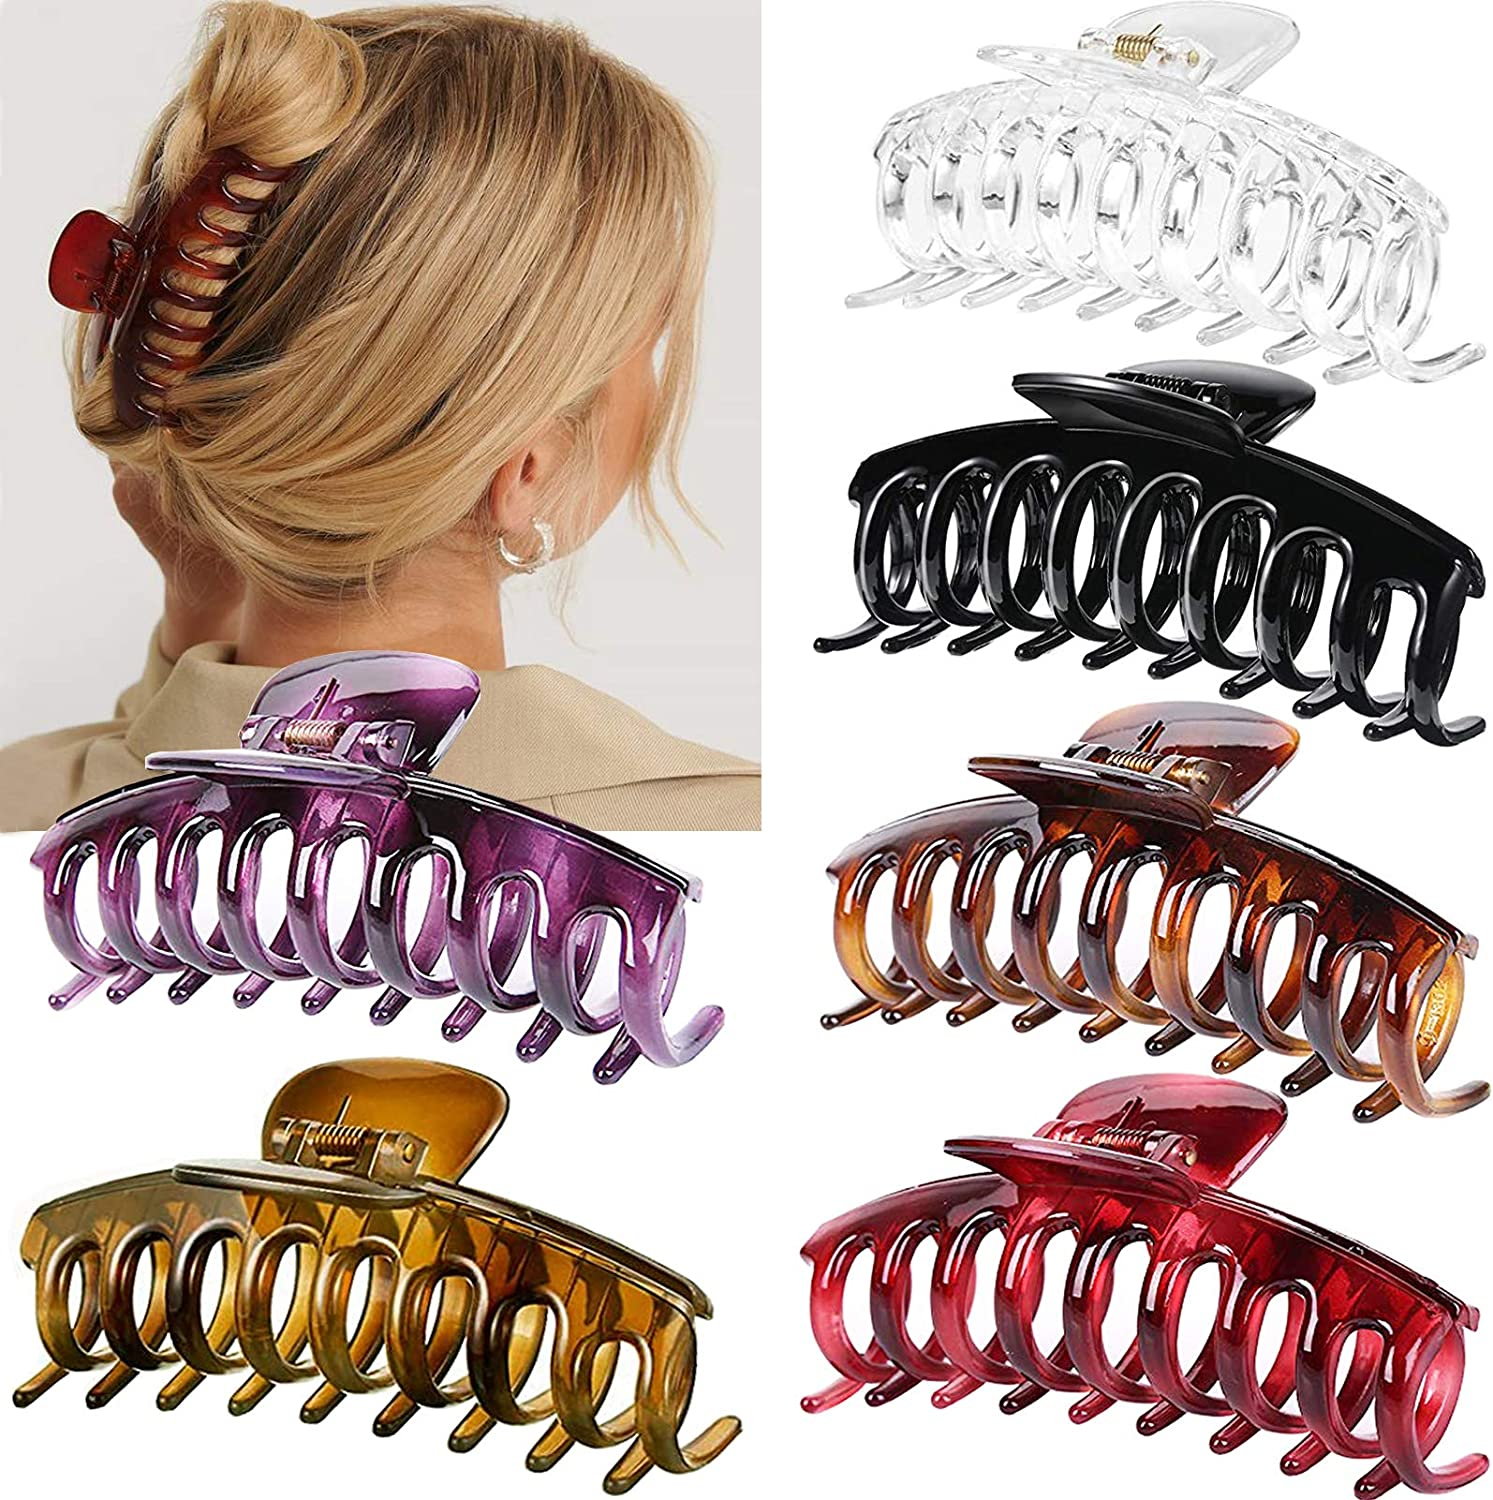 Details about  /Jumbo Banana Comb Clip Thick Hair Riser Claw Interlocking Jaw Clips USA Stock